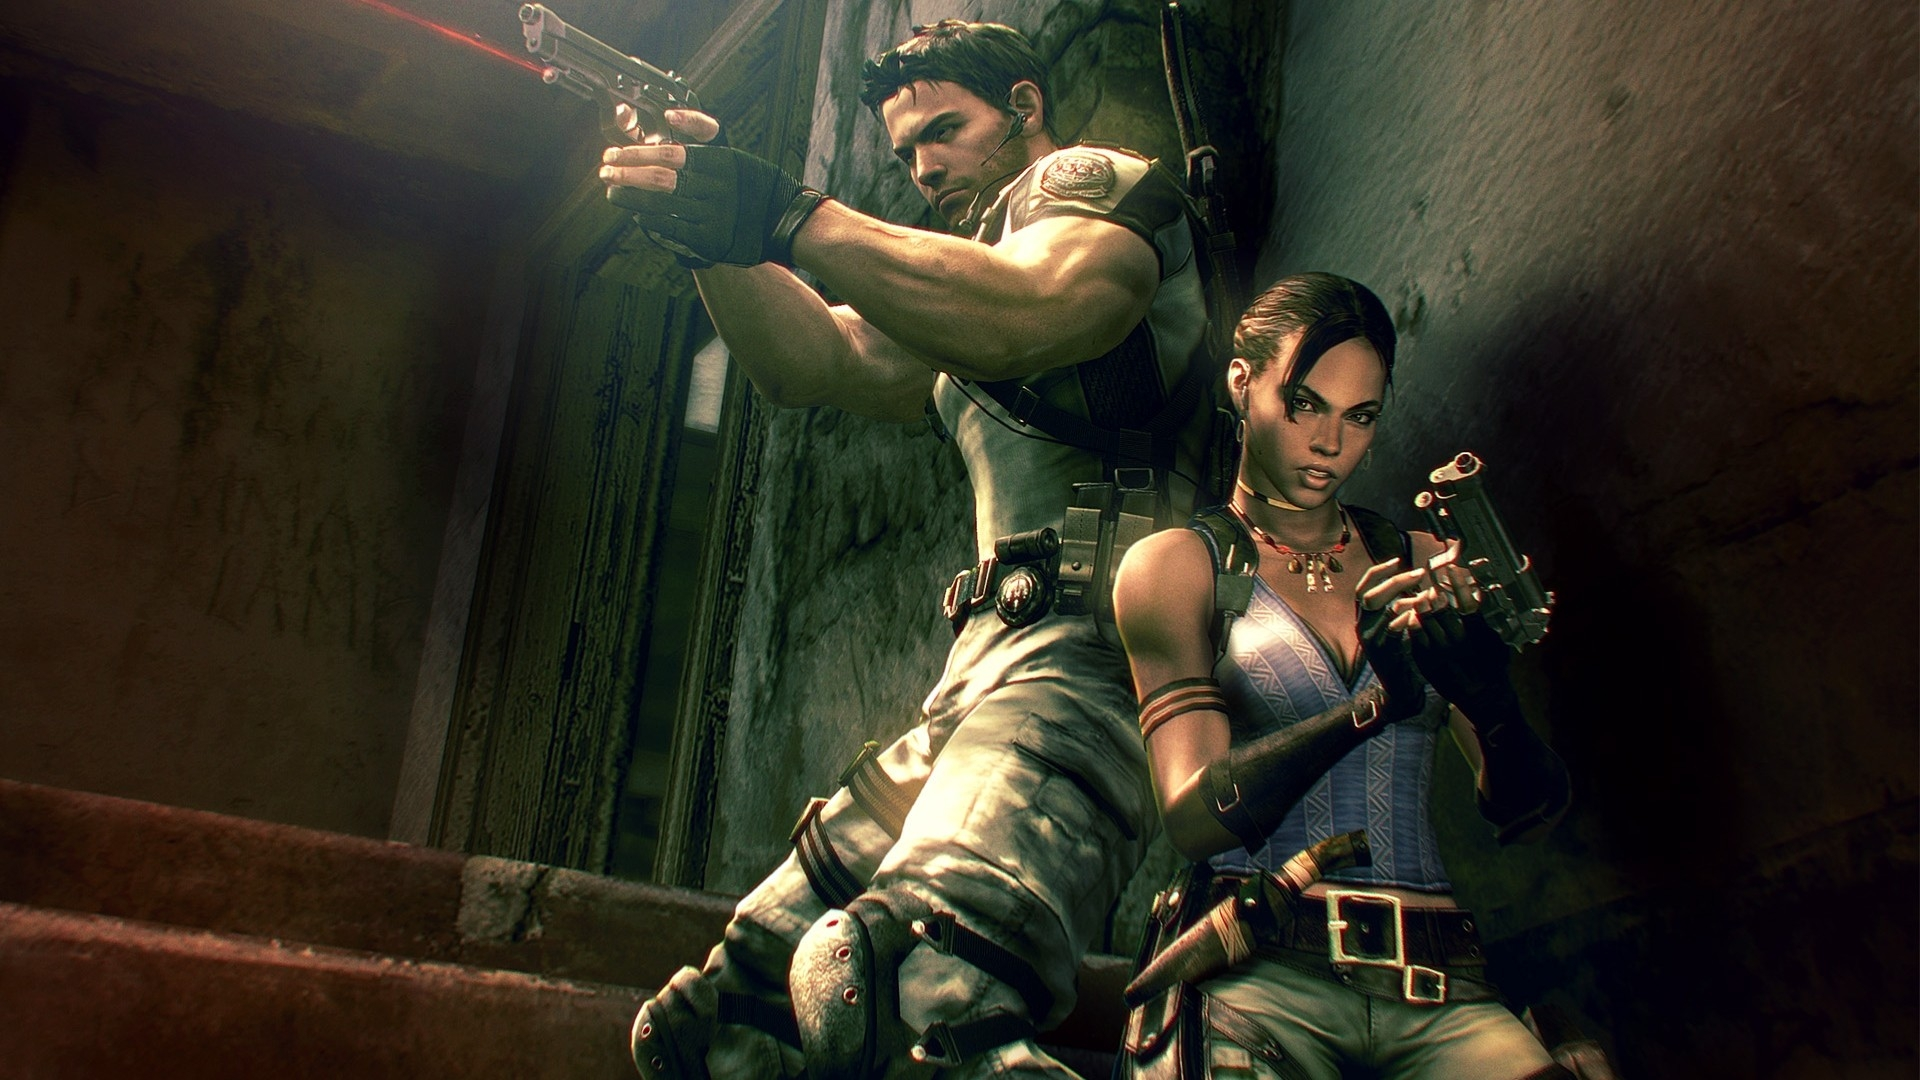 resident-evil-girl-stairs-http-www-wallpapersu-org-resident-evil-girl-stairs-wallpaper-wp48010098